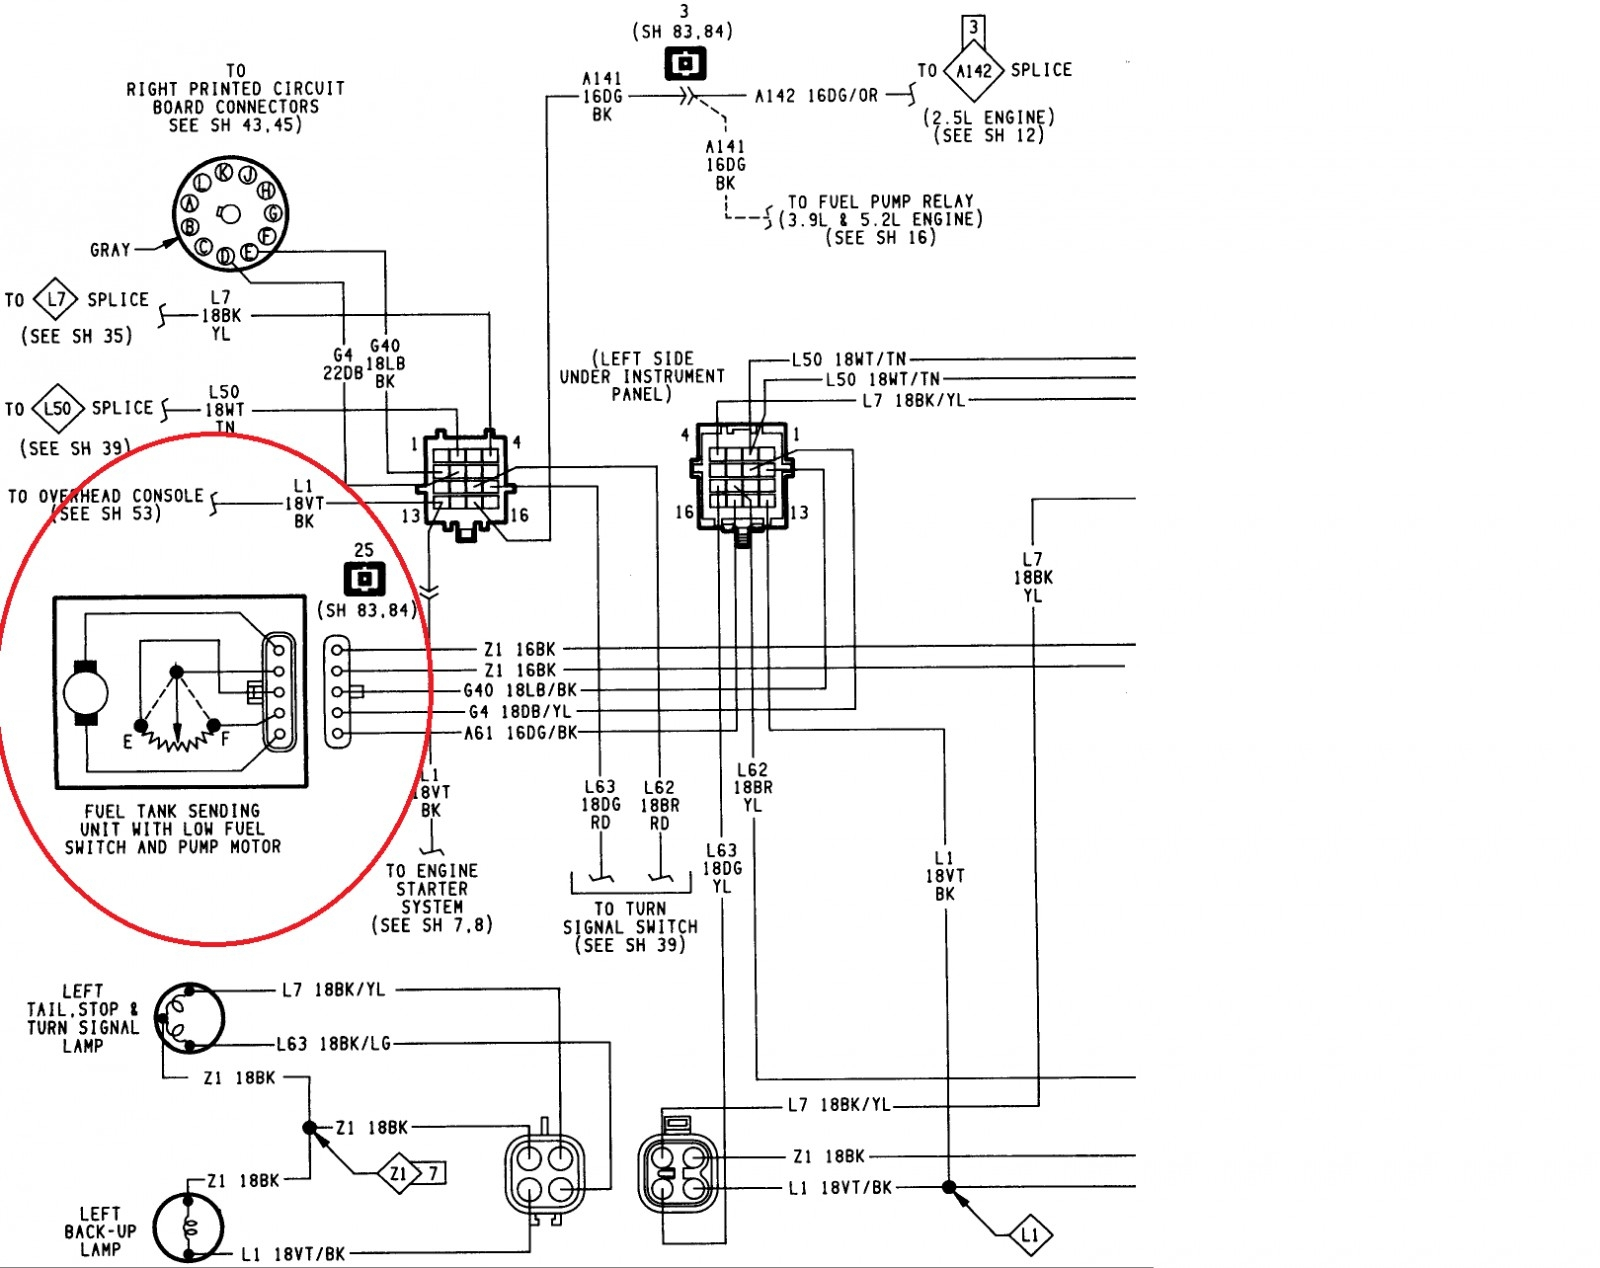 Yamaha Outboard Fuel Gauge Wiring Diagram from i0.wp.com